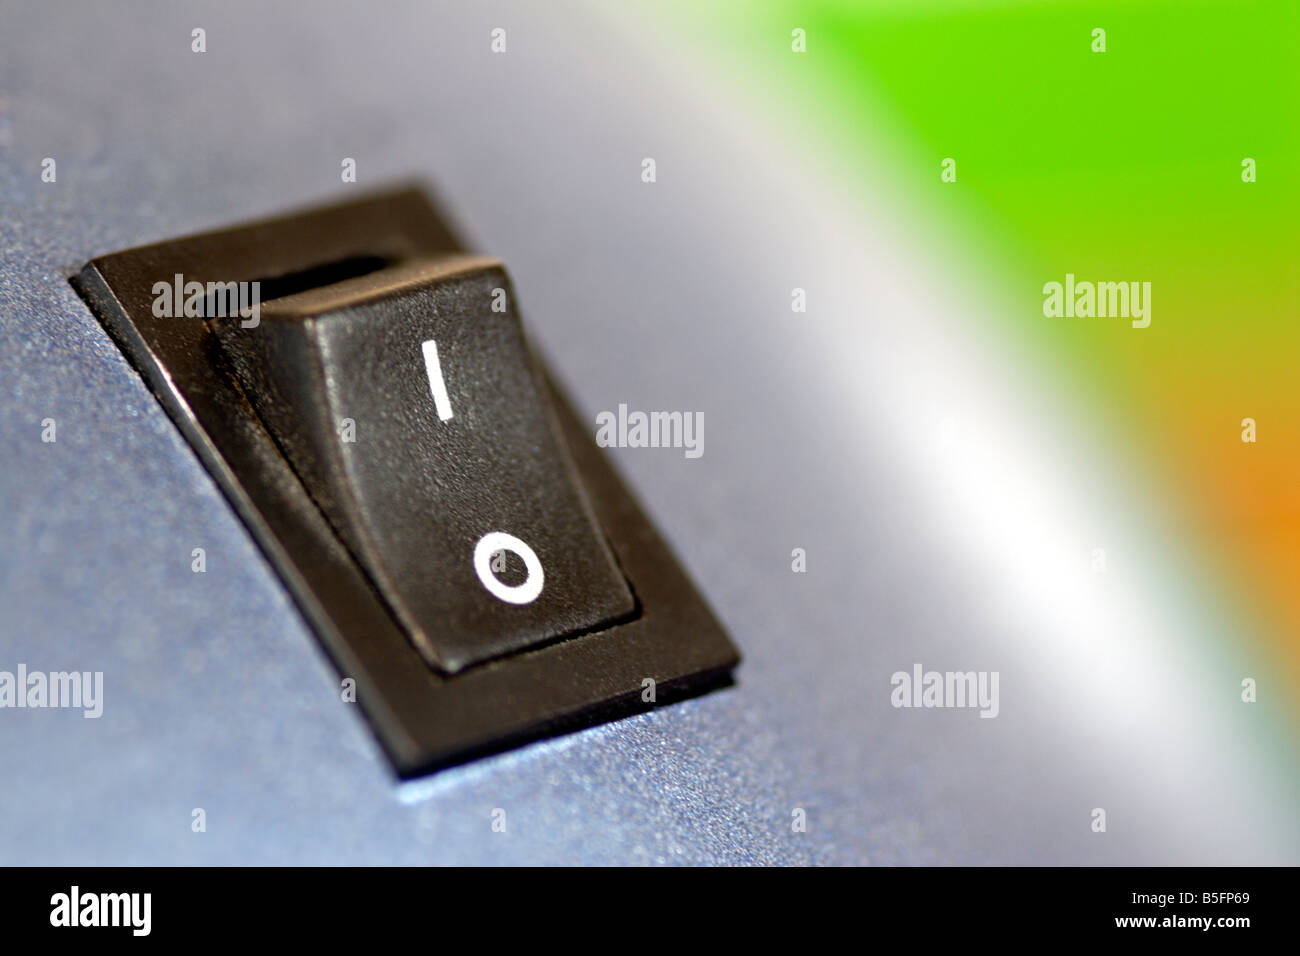 lamp with switch on base fabric shade power on switch lamp base close up stock photo 20630353 alamy